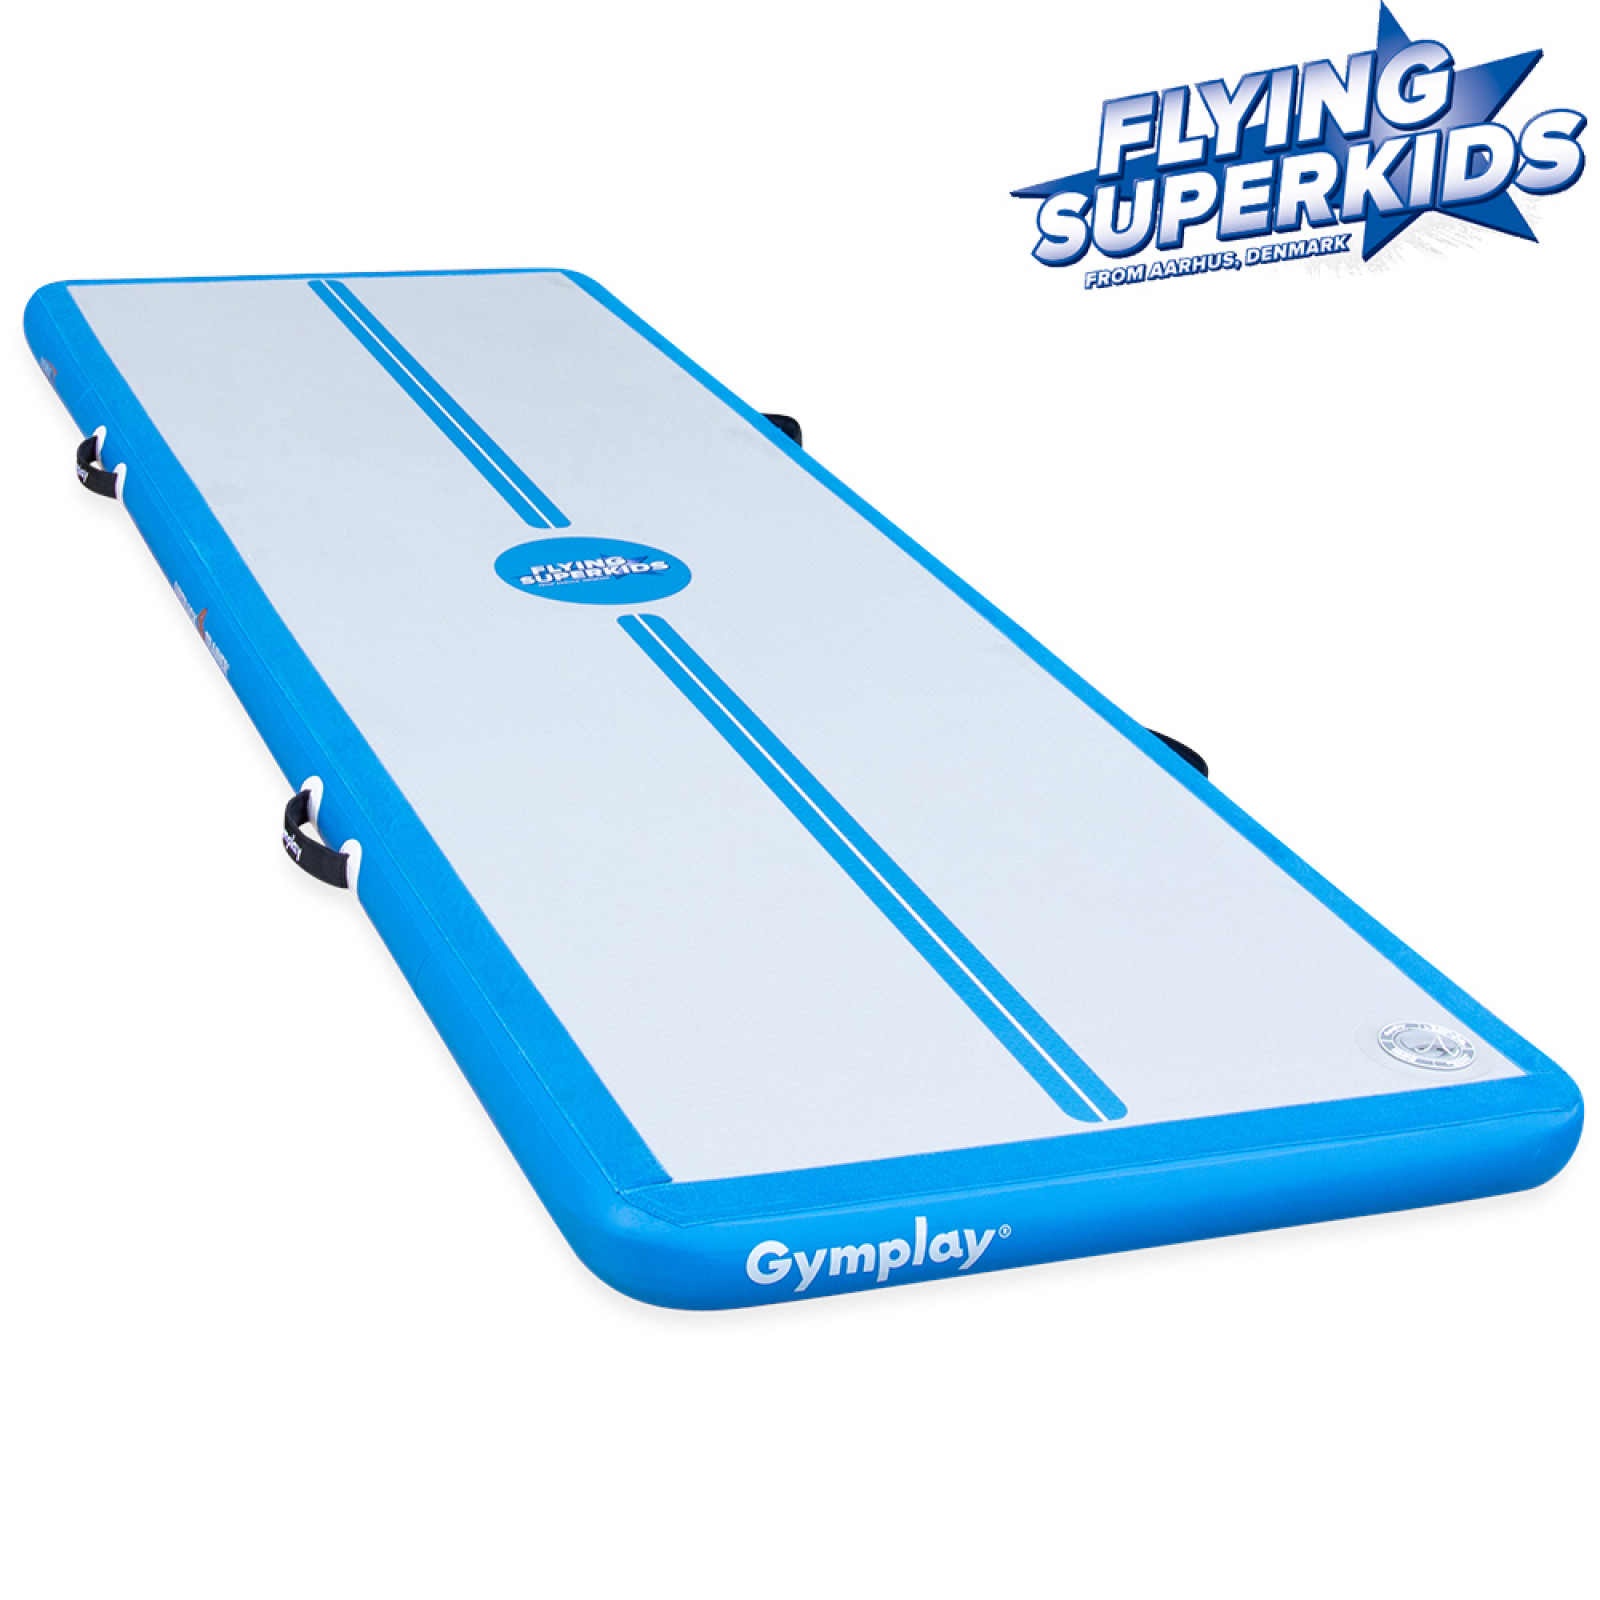 Flying Superkids AirTrack